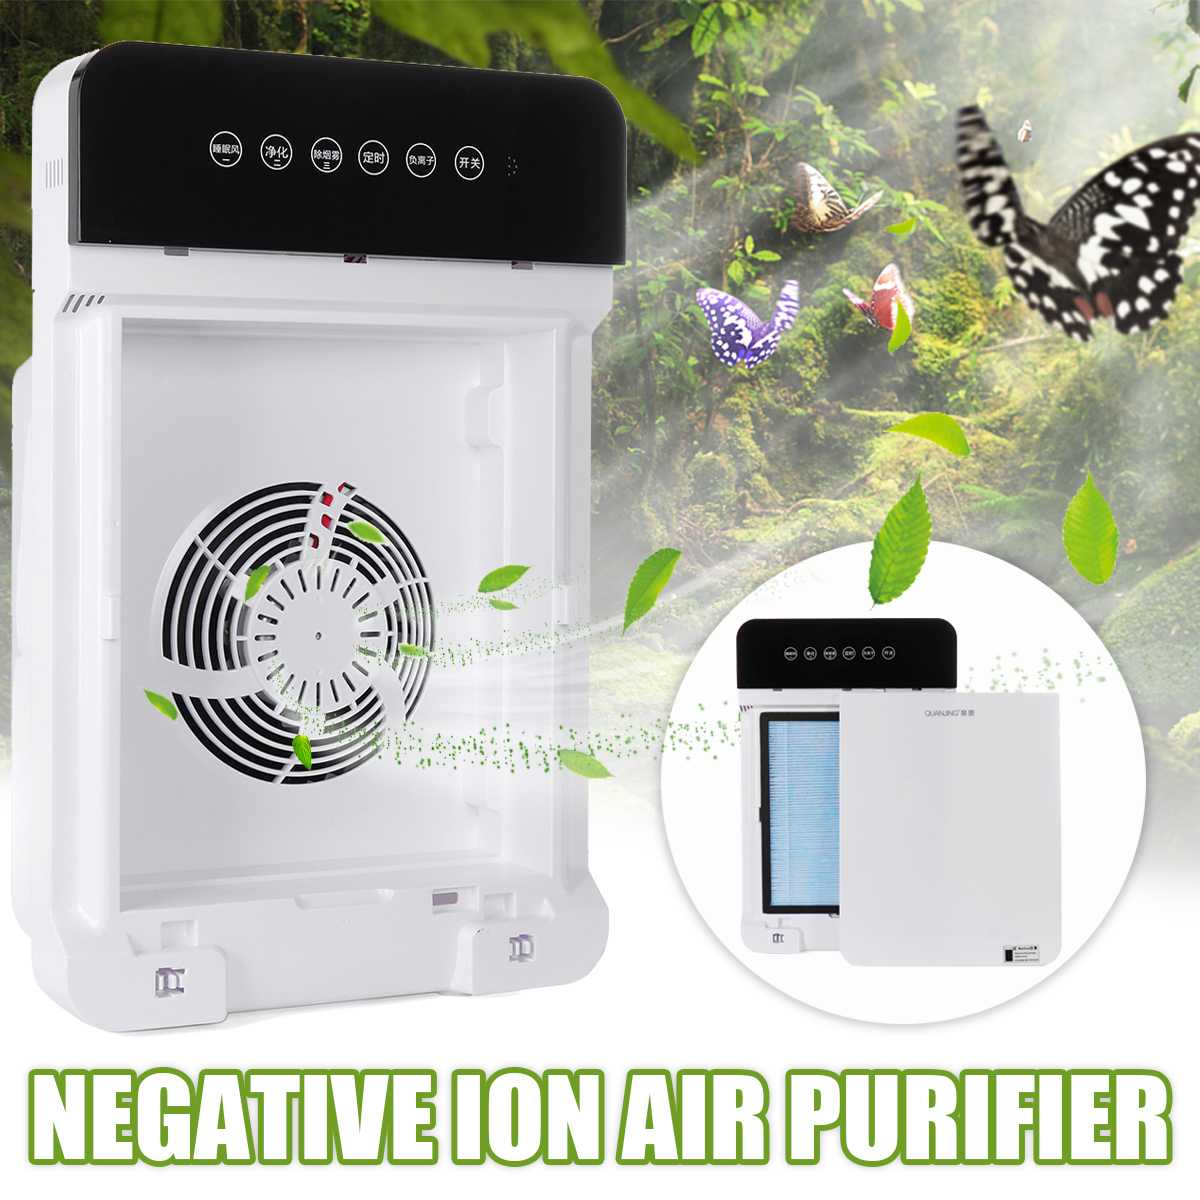 Air Cleaner Formaldehyde Purifiers Remote Control Timer HEPA PM2.5 Pollen Odors Smoke Dust Filter Reduce HCHO Home Cleaner|Air Purifiers| |  - title=